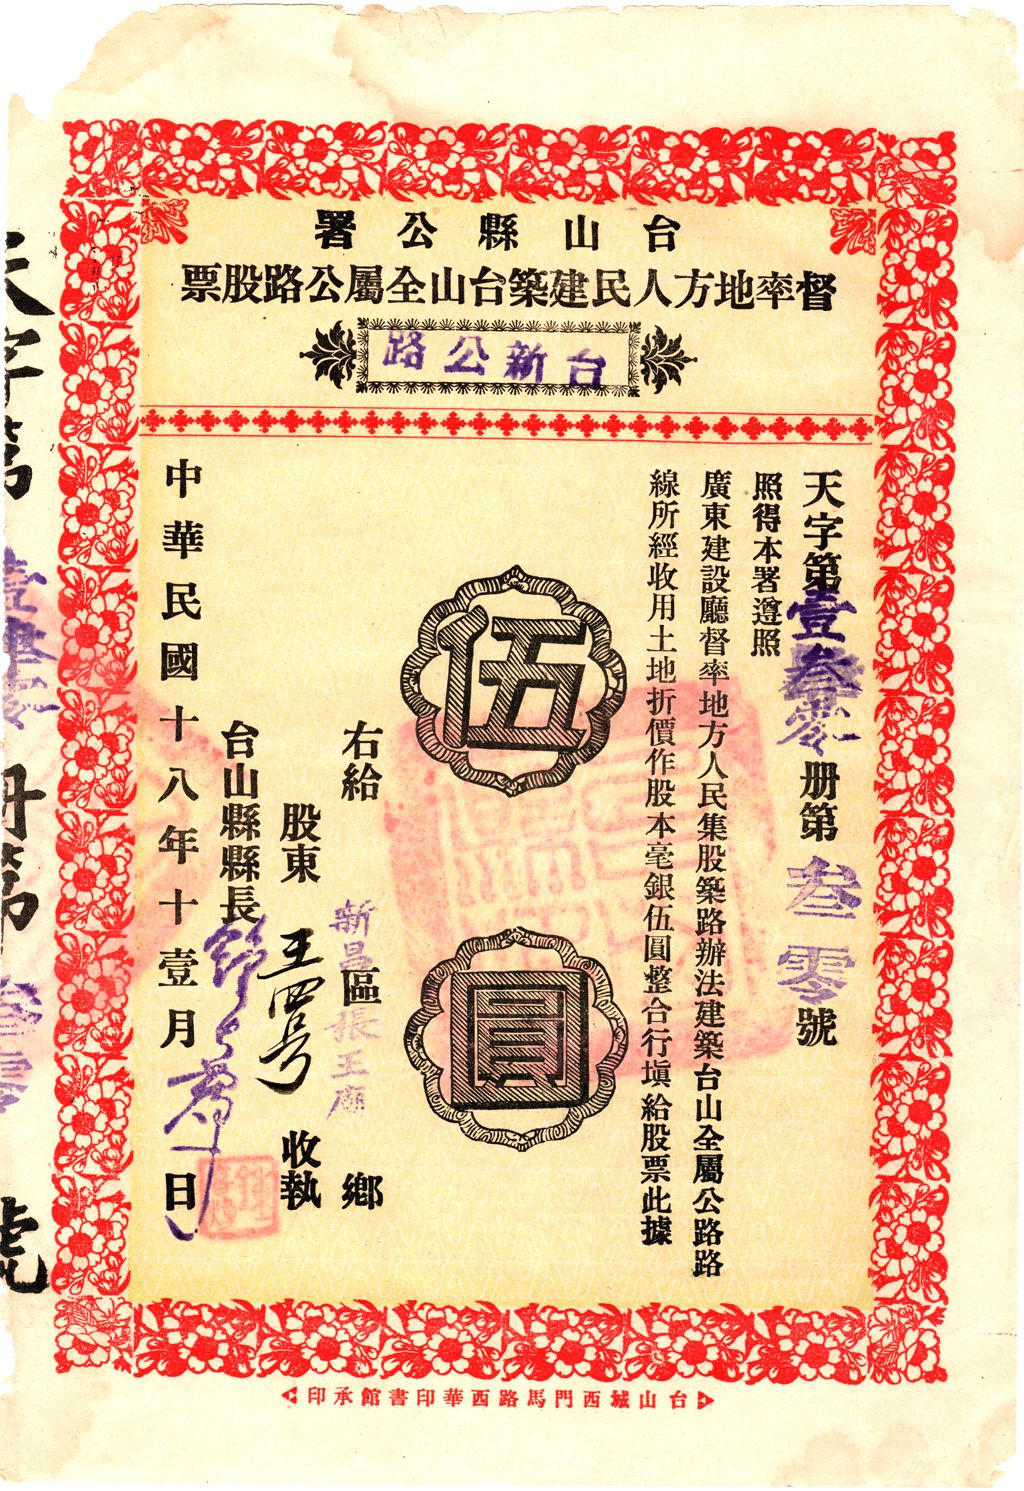 S0102, Taishan County Road Co, Stock Certificate of 5 Dollars, China 1929